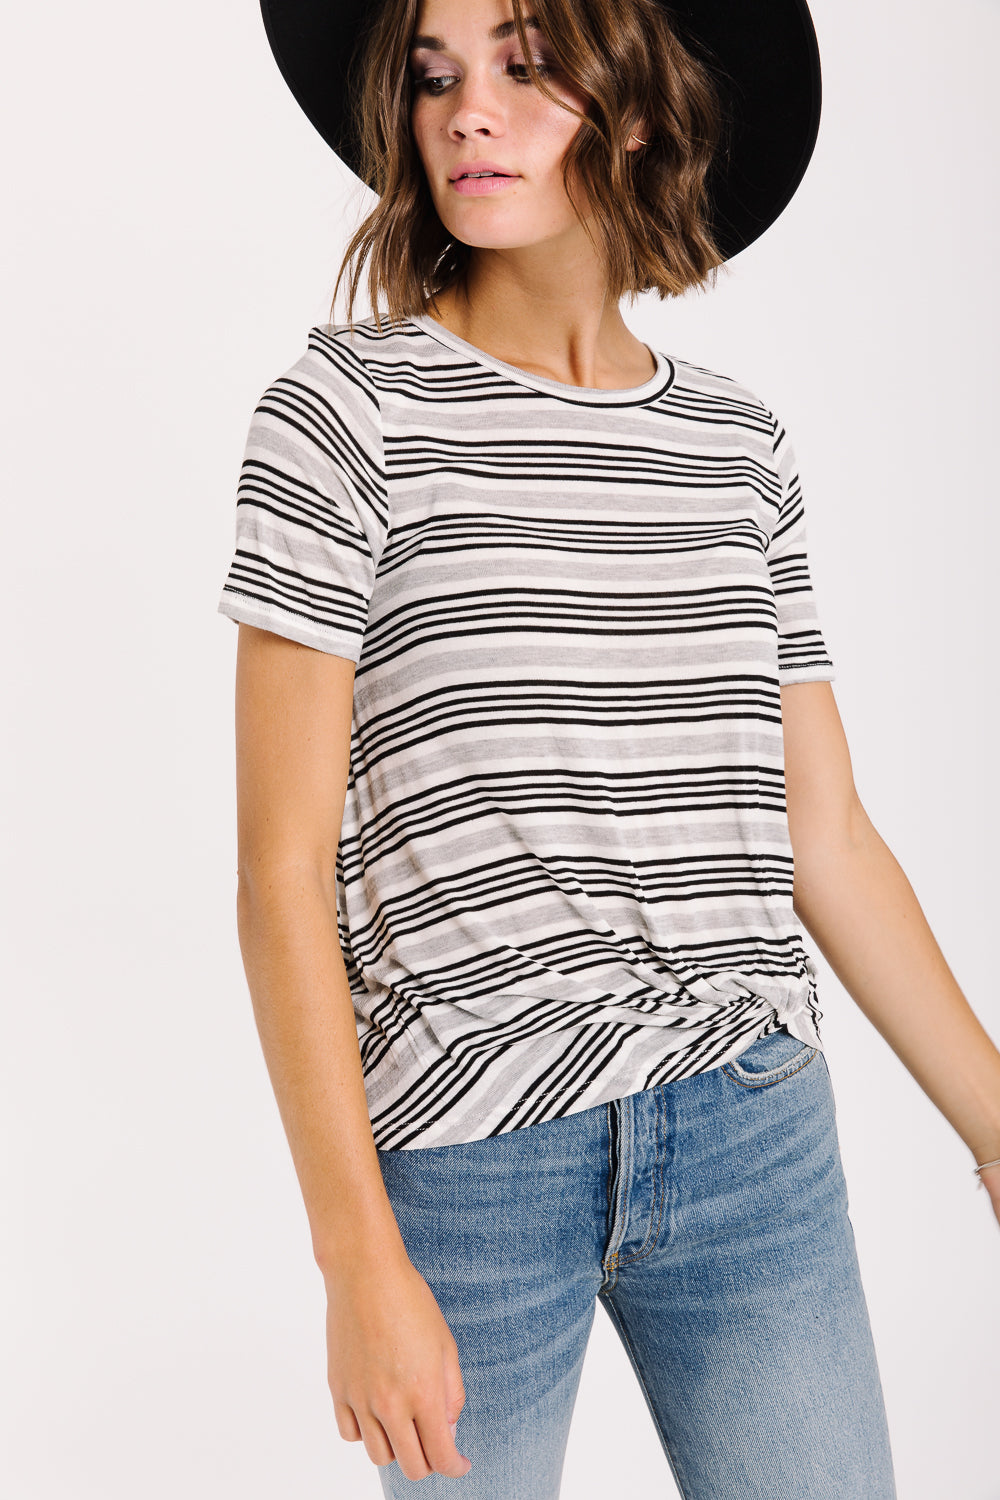 The Malta Striped Knot Blouse in White + Black